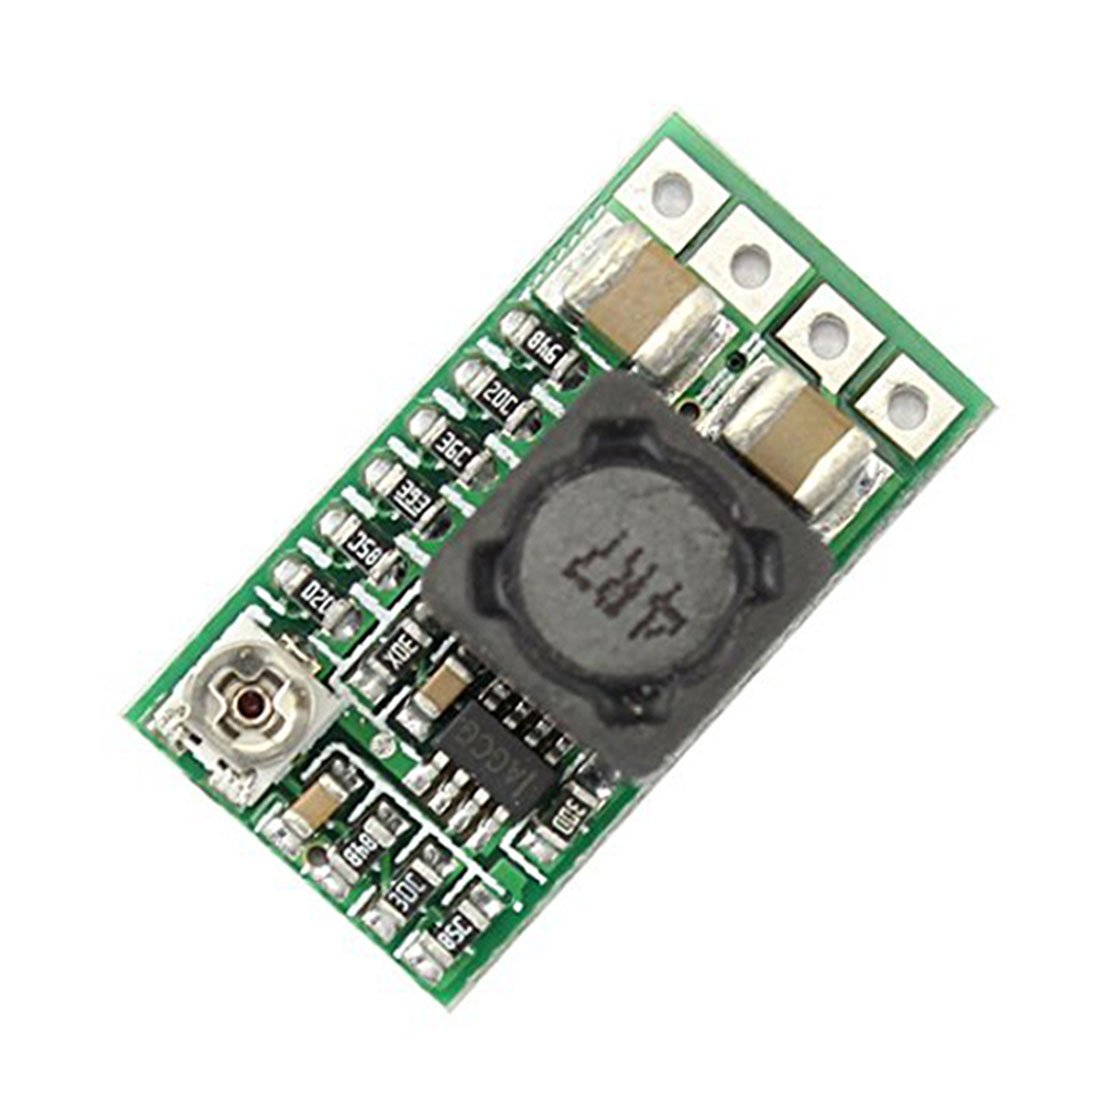 DC-DC Buck Converter 5-23V 12V to 3V 3.3V 5V 9V 12V 3A Step Down Power Regulator